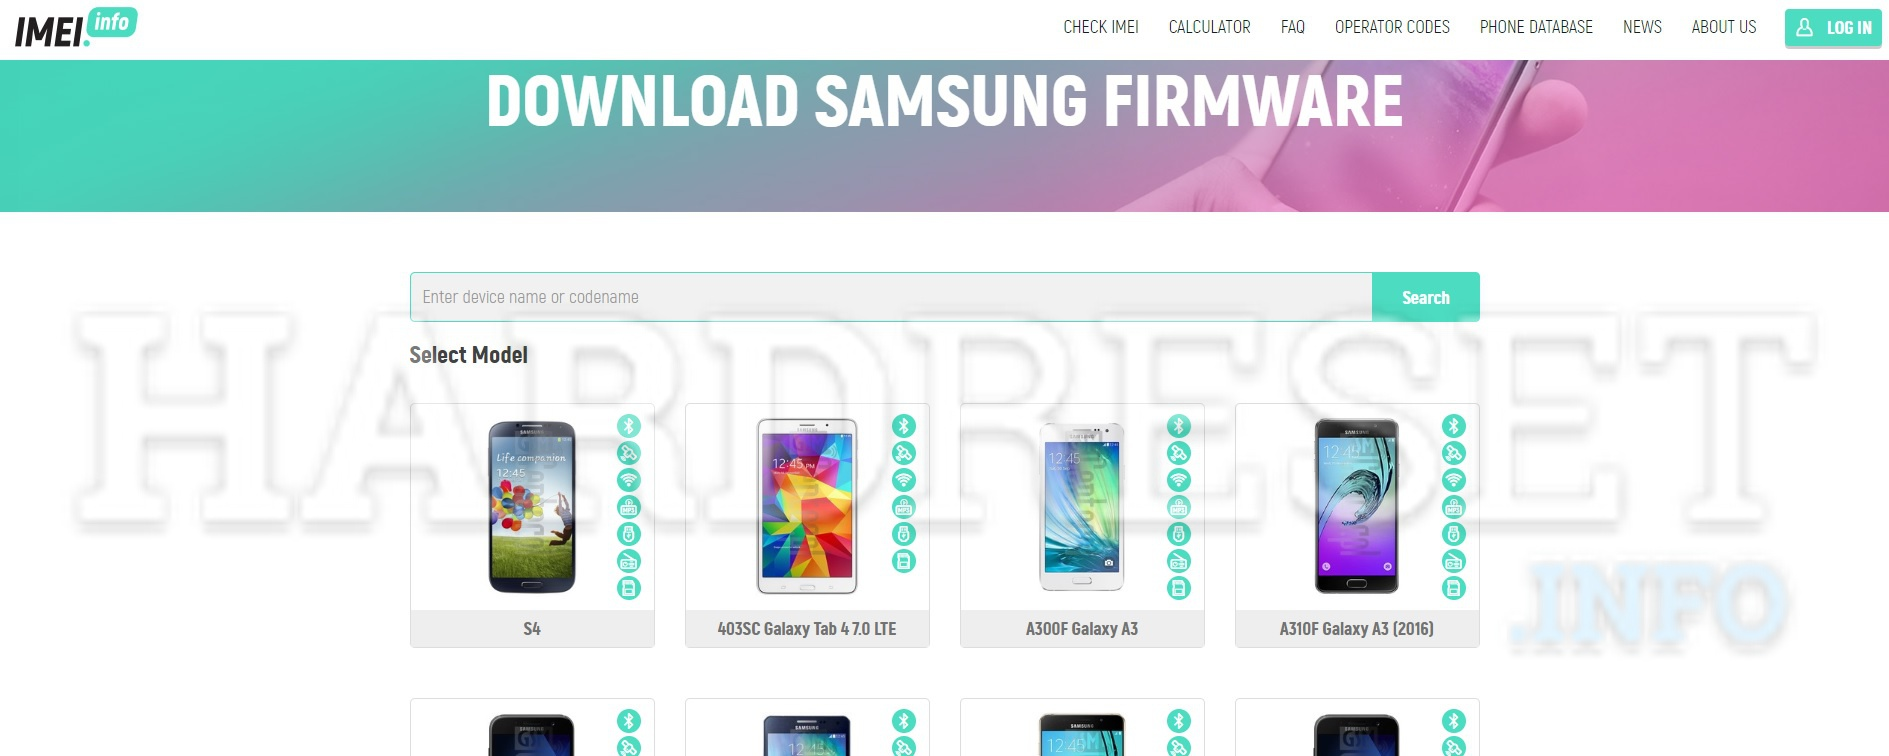 imei.info Samsung Download Firmware page